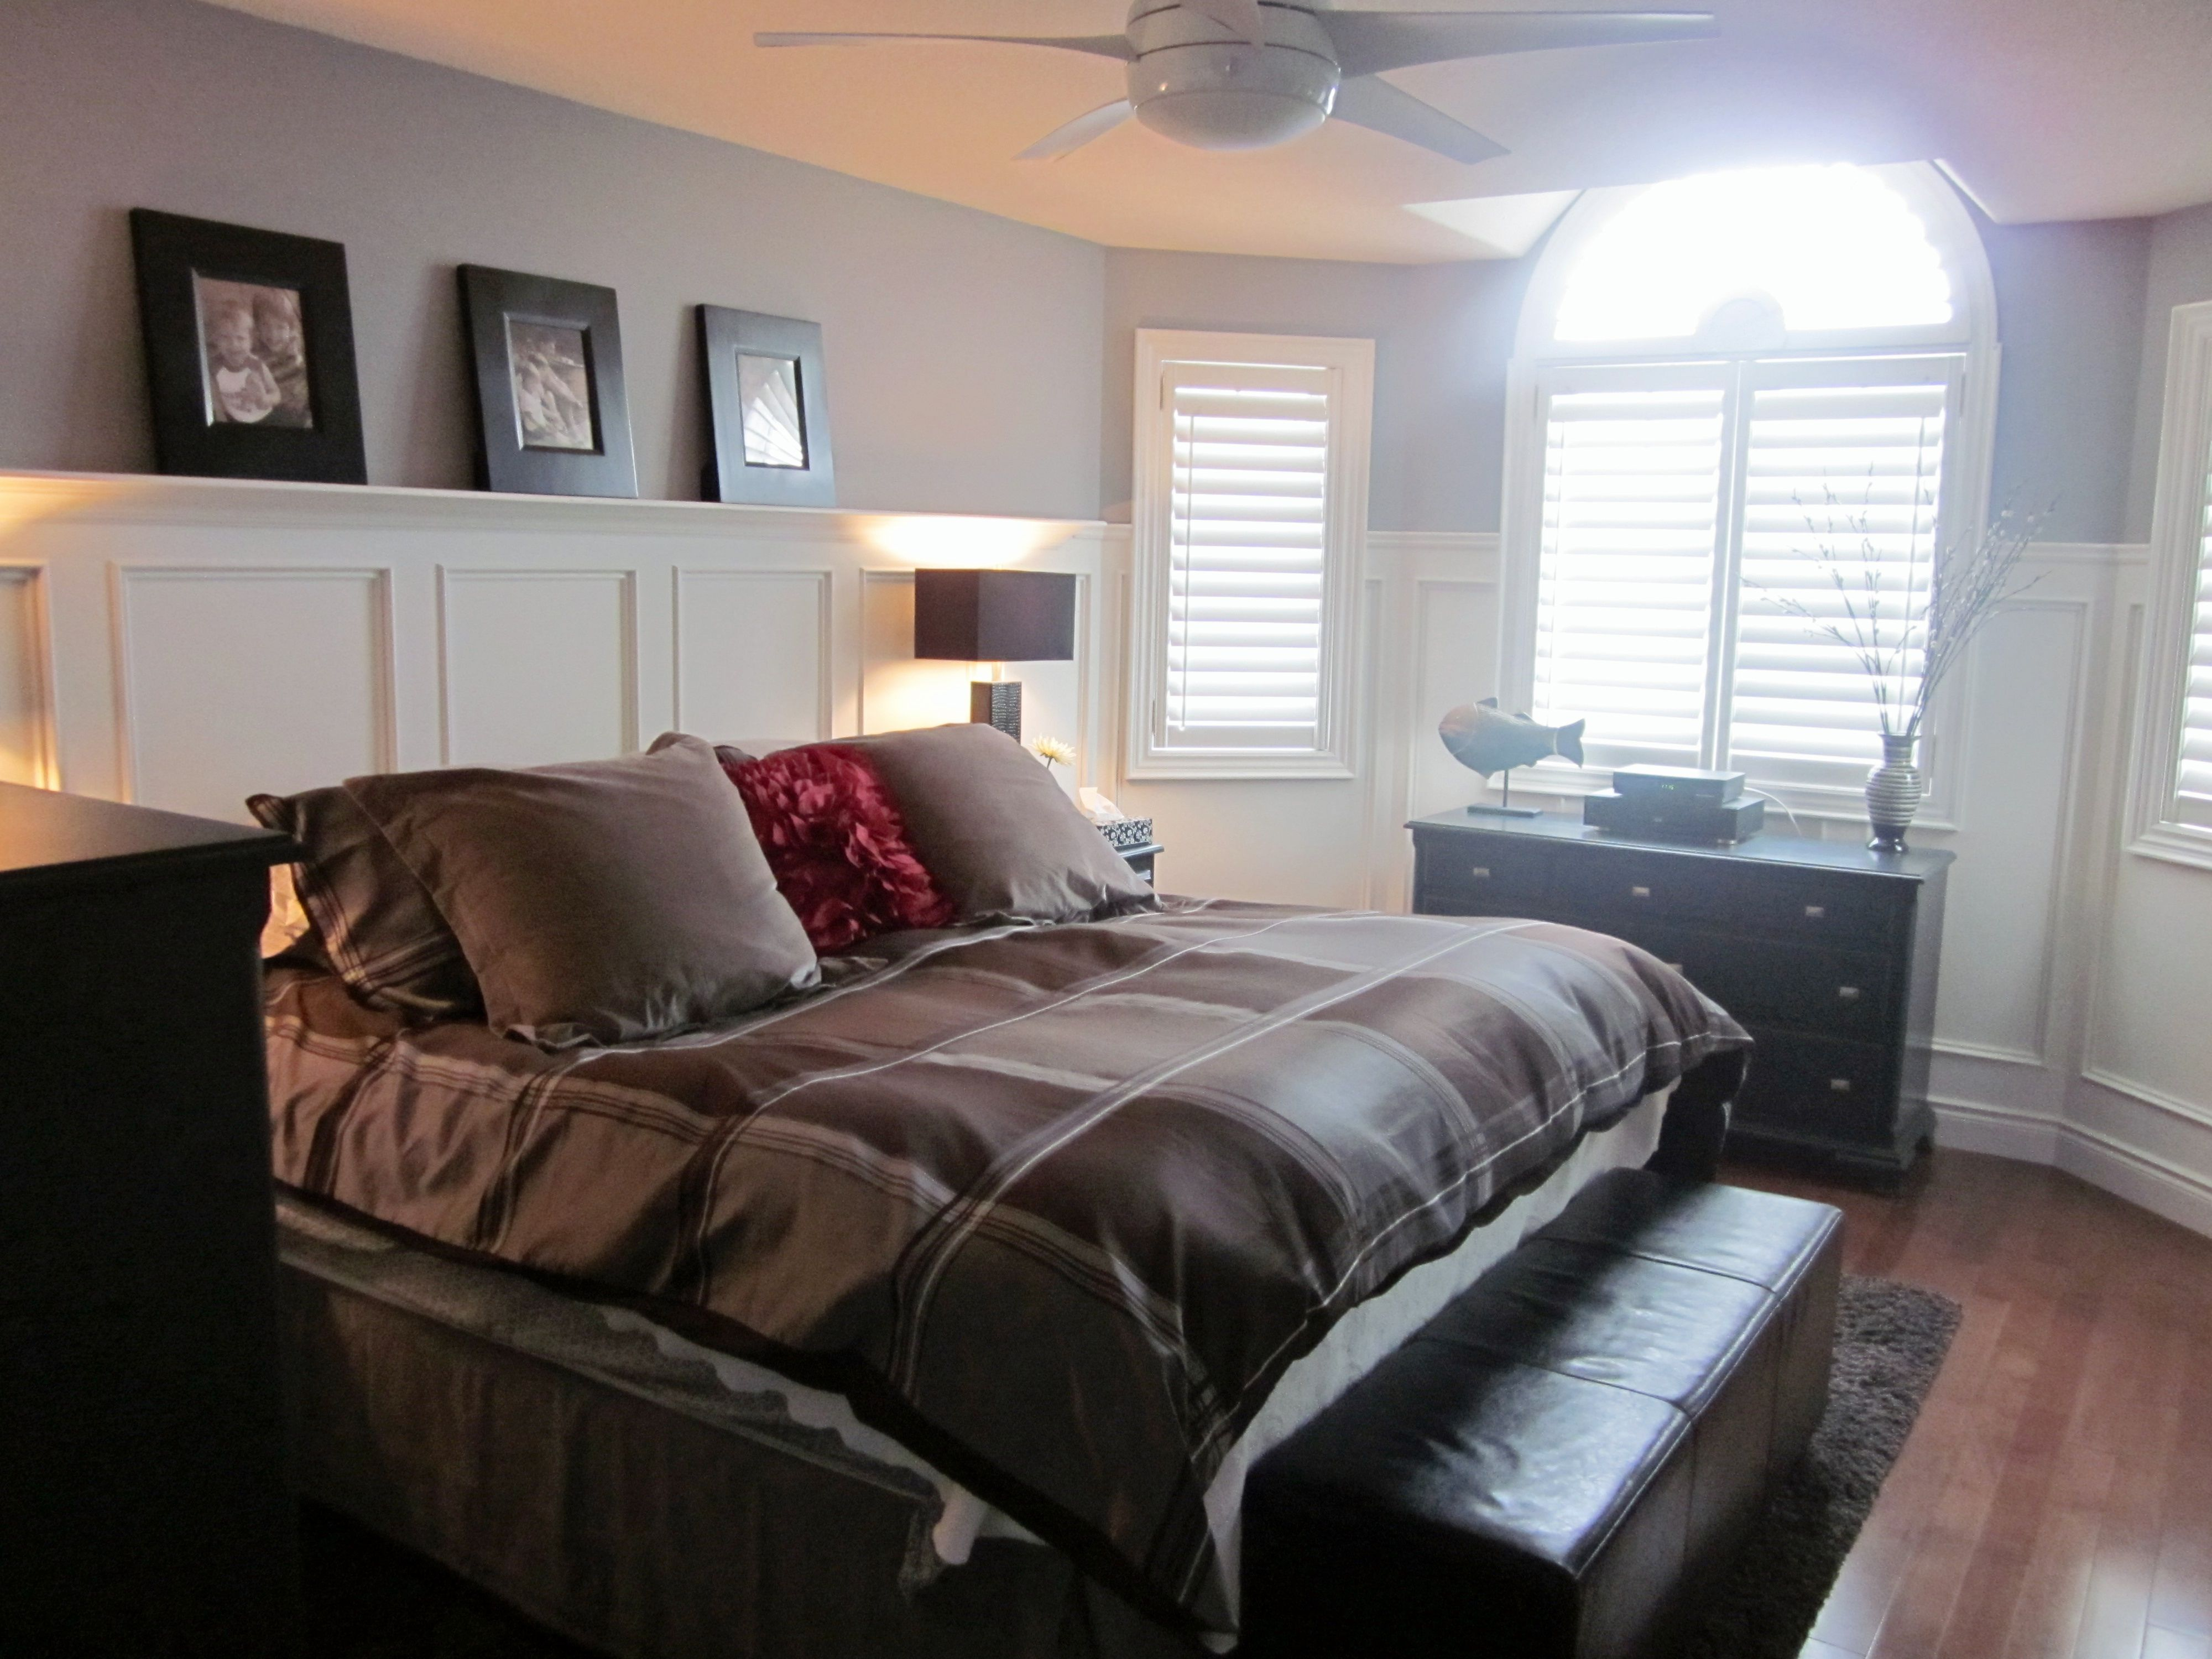 Interior Wainscoting Bedroom Ideas master bedroom with simple white bed linens an upholstered beautify your interiors gorgeous wainscoting designs ideas